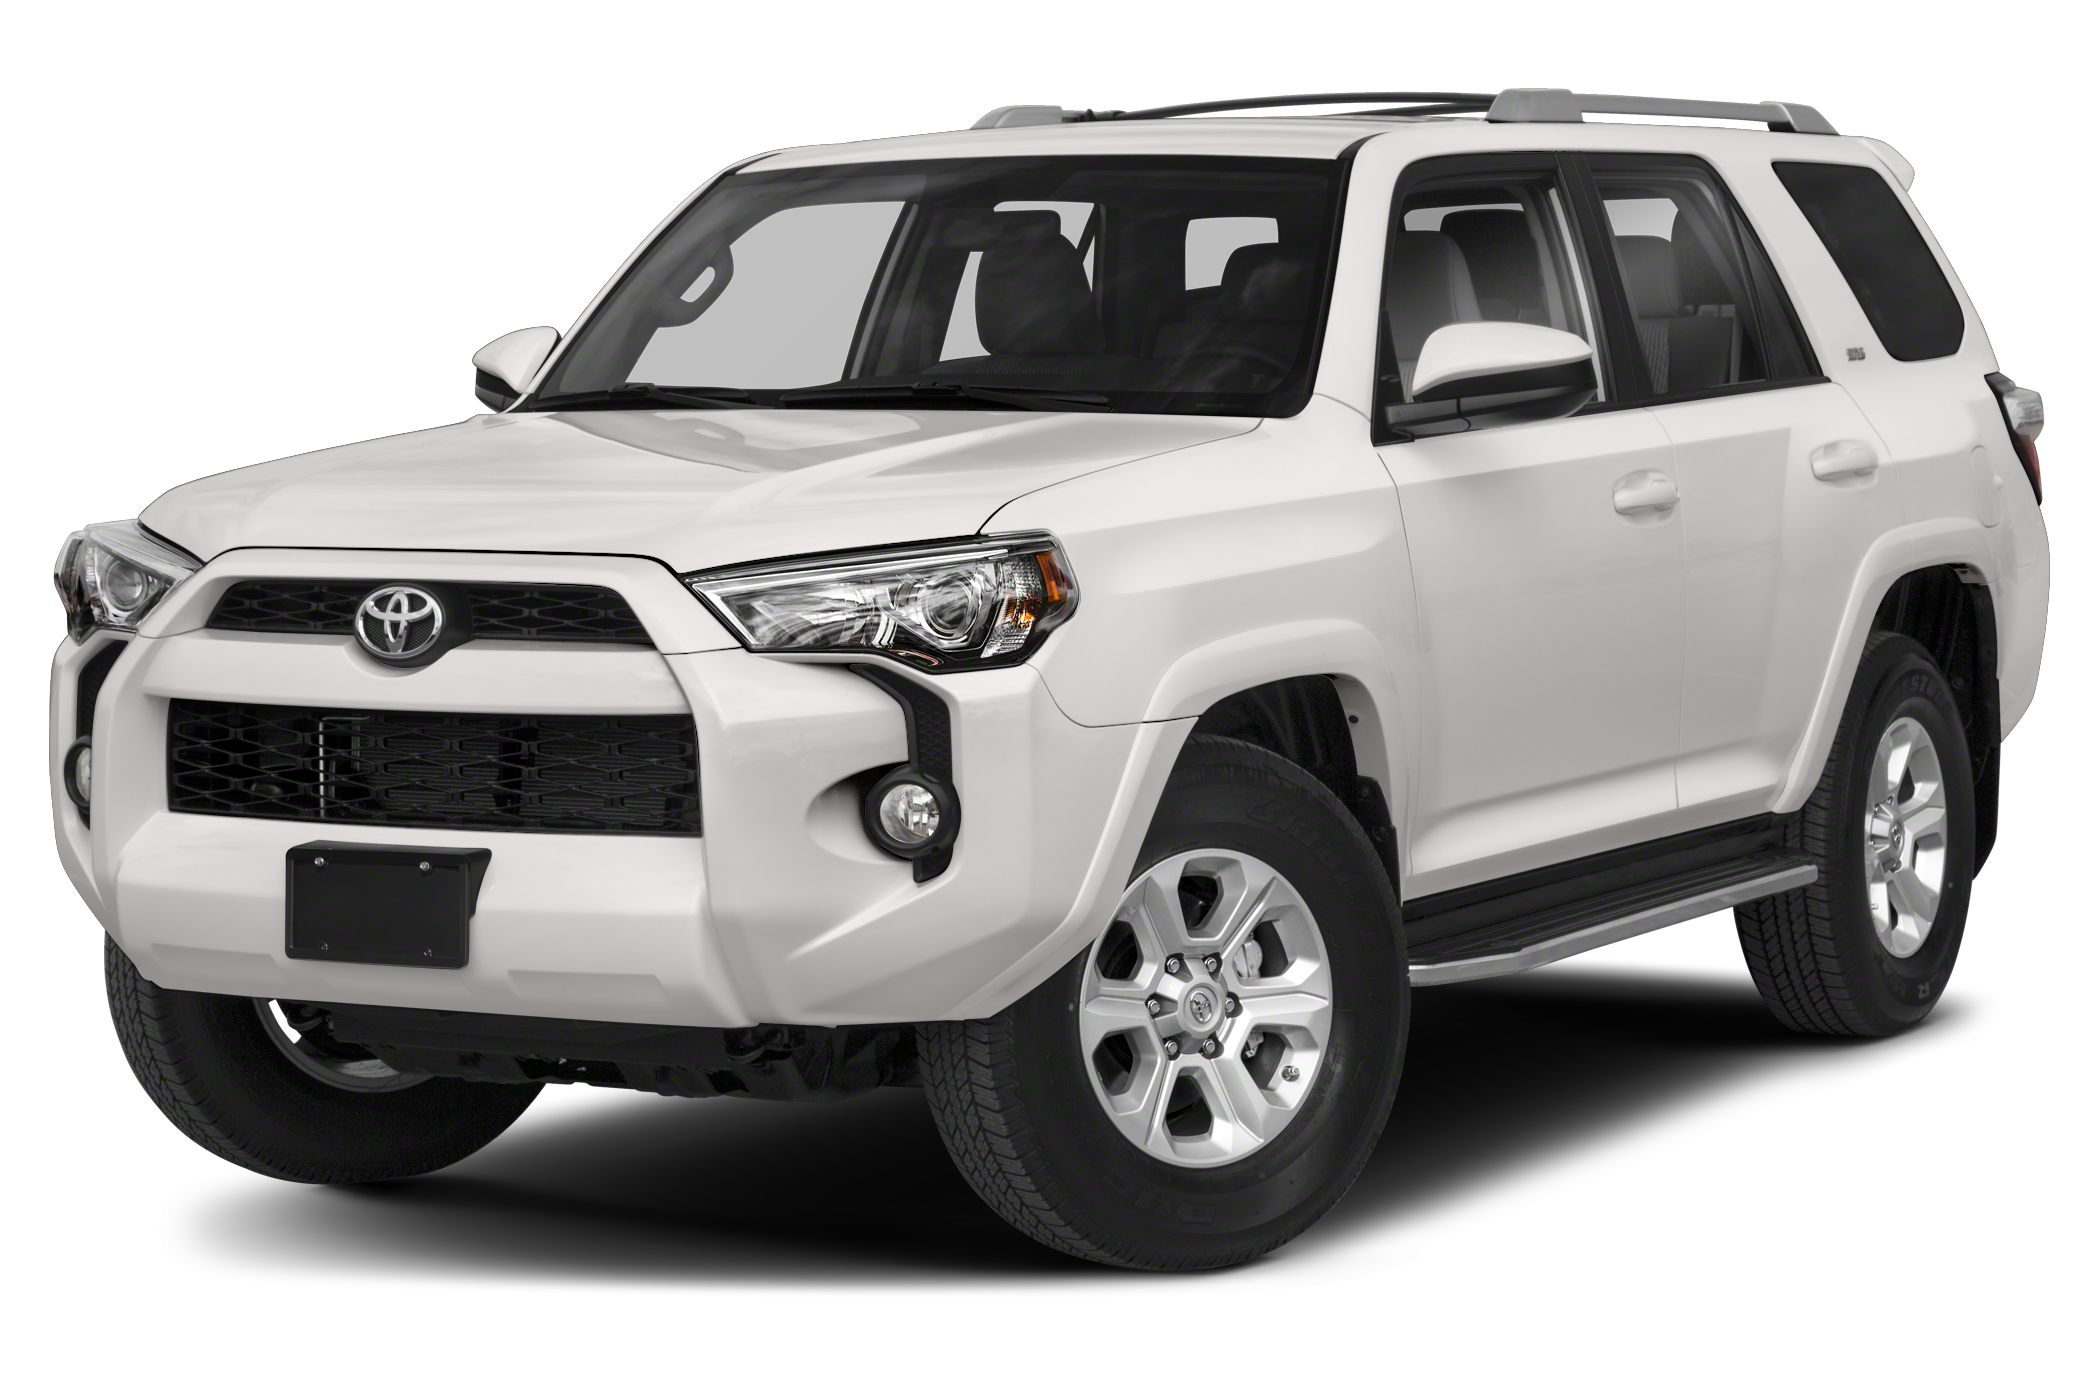 2018 Toyota 4Runner Deals, Prices, Incentives & Leases ...